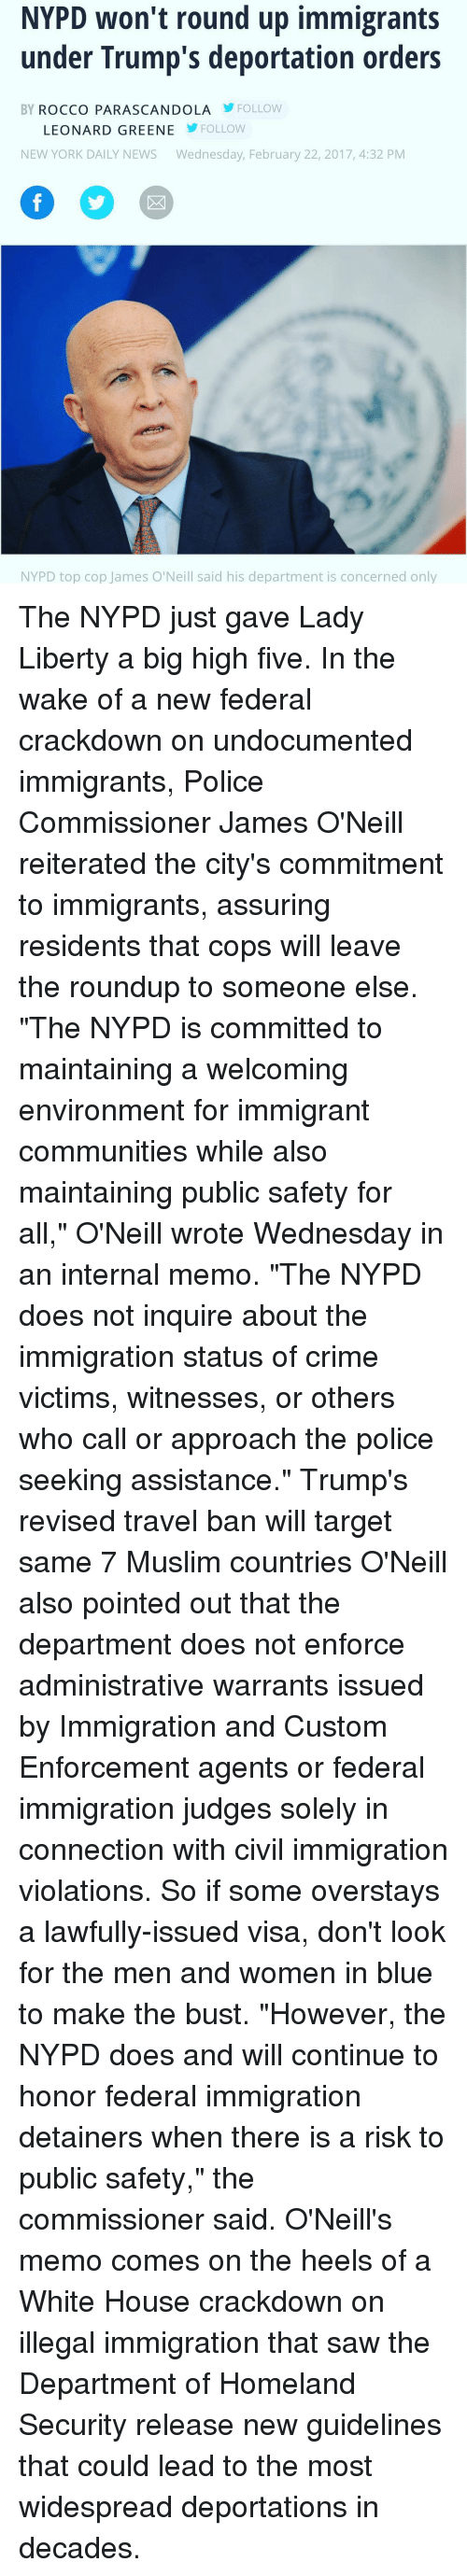 """Trump Deportation: NYPD won't round up immigrants  under Trump's deportation orders  BY ROCCO PARASCANDO LA FOLLOW  LEONARD GREENE  FOLLOW  NEW YORK DAILY NEWS  Wednesday, February 22, 2017, 4:32 PM  NYPD top cop James O'Neill said his department is concerned only The NYPD just gave Lady Liberty a big high five. In the wake of a new federal crackdown on undocumented immigrants, Police Commissioner James O'Neill reiterated the city's commitment to immigrants, assuring residents that cops will leave the roundup to someone else. """"The NYPD is committed to maintaining a welcoming environment for immigrant communities while also maintaining public safety for all,"""" O'Neill wrote Wednesday in an internal memo. """"The NYPD does not inquire about the immigration status of crime victims, witnesses, or others who call or approach the police seeking assistance."""" Trump's revised travel ban will target same 7 Muslim countries O'Neill also pointed out that the department does not enforce administrative warrants issued by Immigration and Custom Enforcement agents or federal immigration judges solely in connection with civil immigration violations. So if some overstays a lawfully-issued visa, don't look for the men and women in blue to make the bust. """"However, the NYPD does and will continue to honor federal immigration detainers when there is a risk to public safety,"""" the commissioner said. O'Neill's memo comes on the heels of a White House crackdown on illegal immigration that saw the Department of Homeland Security release new guidelines that could lead to the most widespread deportations in decades."""